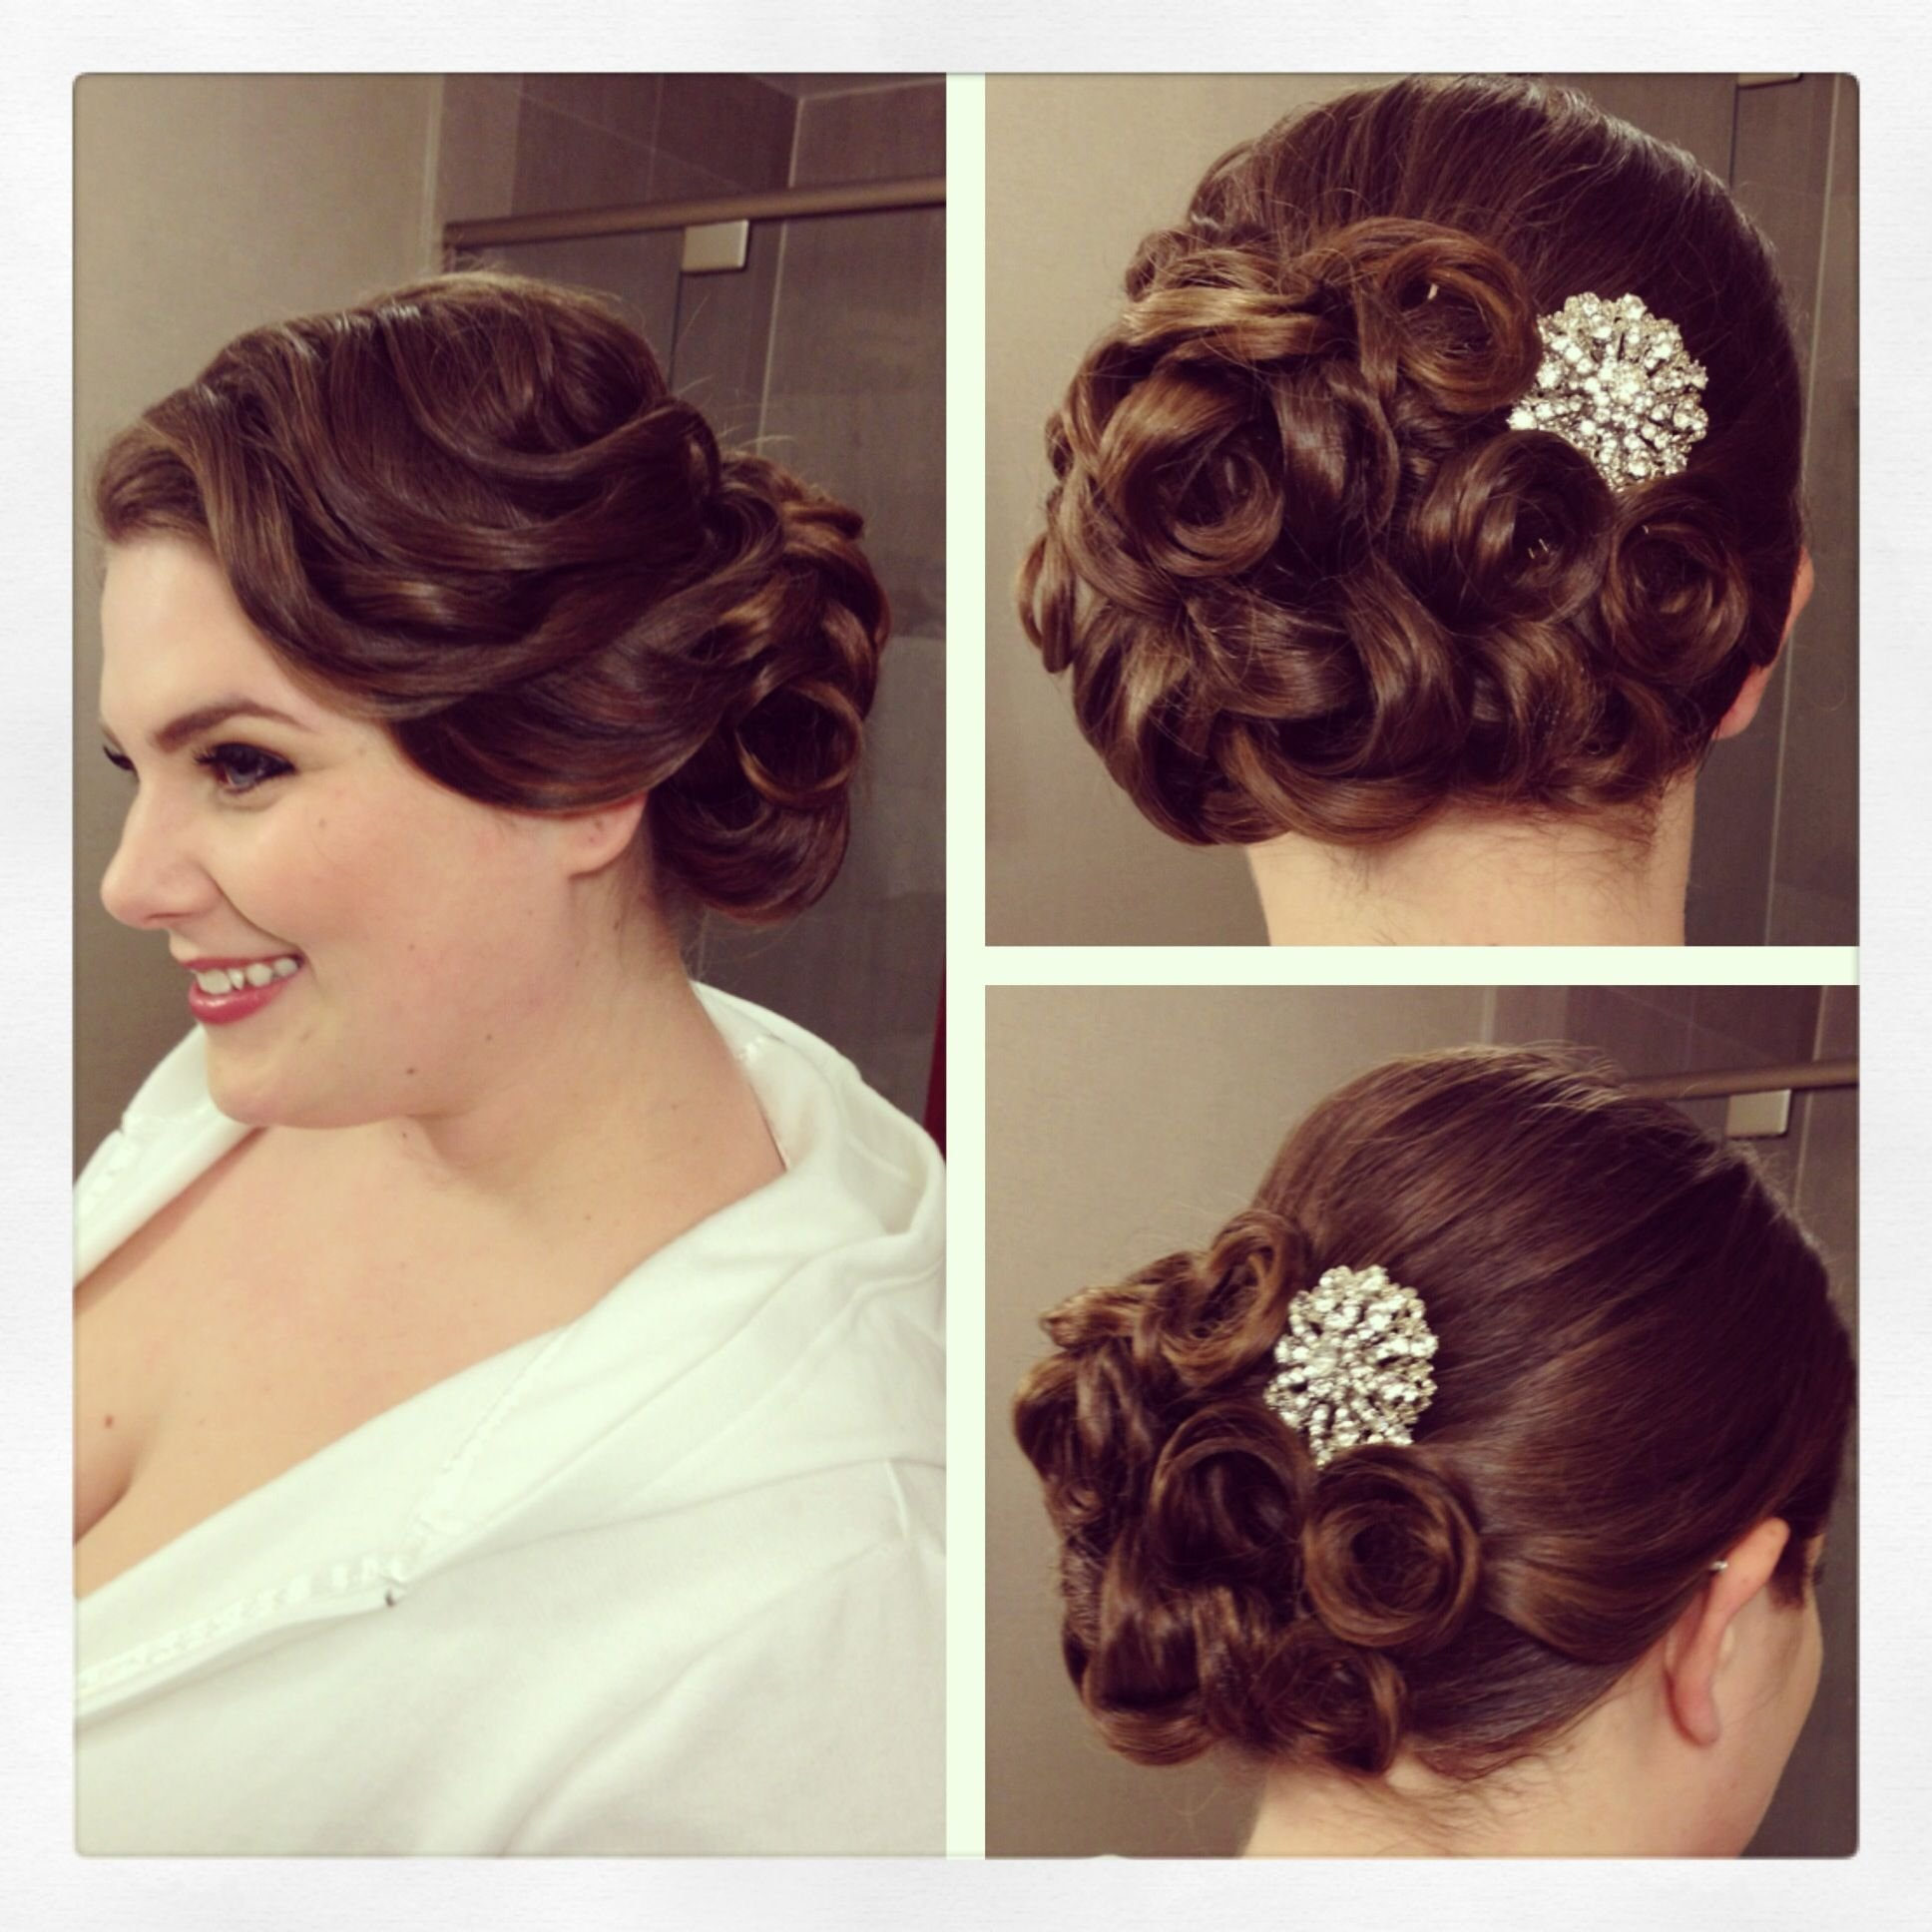 The Best Vintage Side Updo Vintage Hairstyle Pin Curls Bridal Pictures